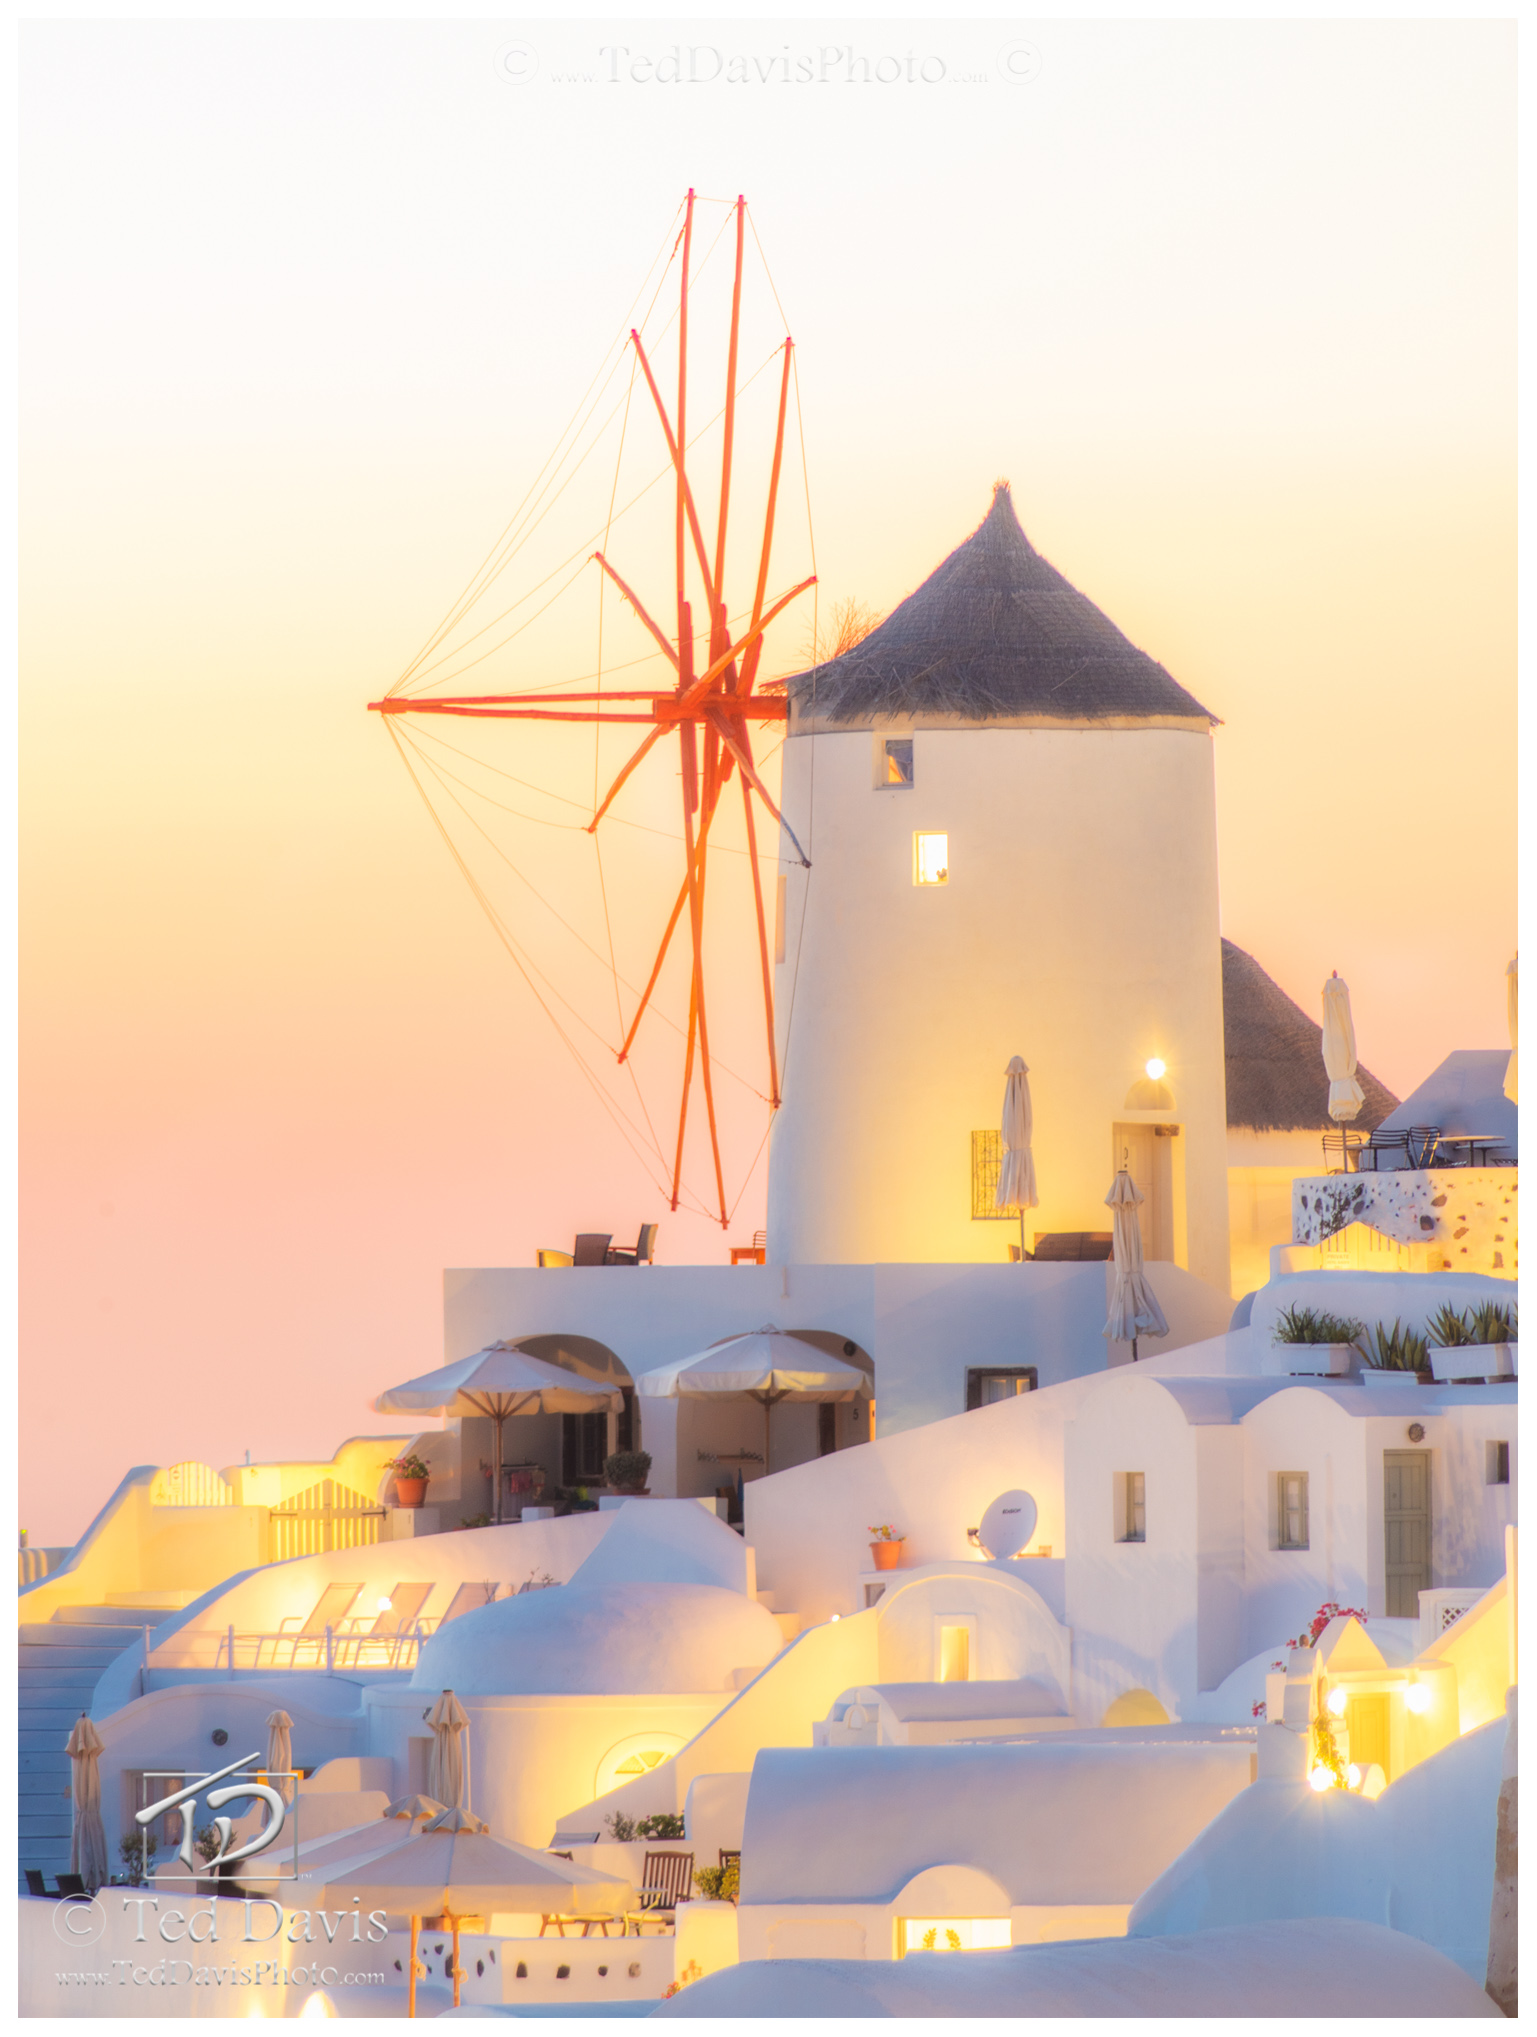 oia, santorini, greece, golden, hour, glow, sky, magical, warm, windmills, brooklyn, dreams, dreamt, dreaming, sofest, loveliest, sunset, radiant, village, dream, photo